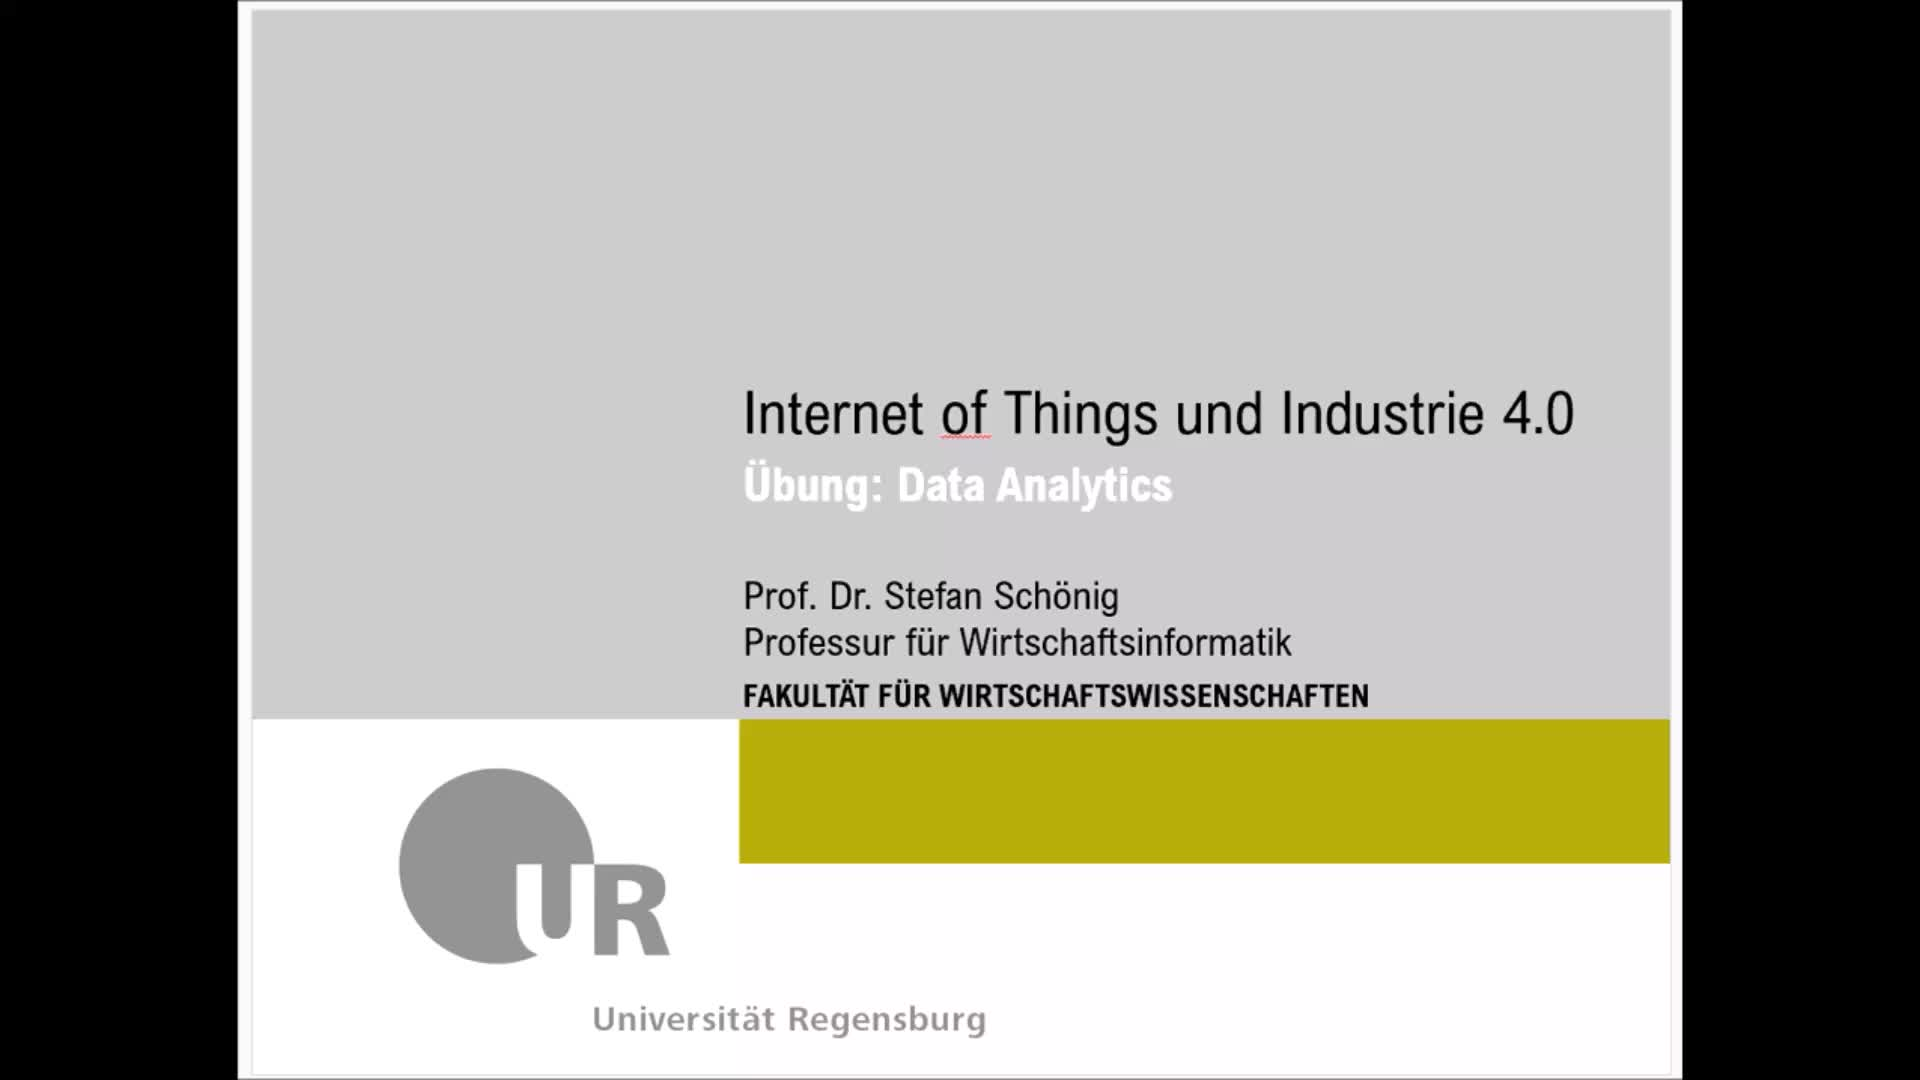 SS 2020 - Internet of Things und Industrie 4.0 - Übung 8 (Data Analytics - ML Verfahren)